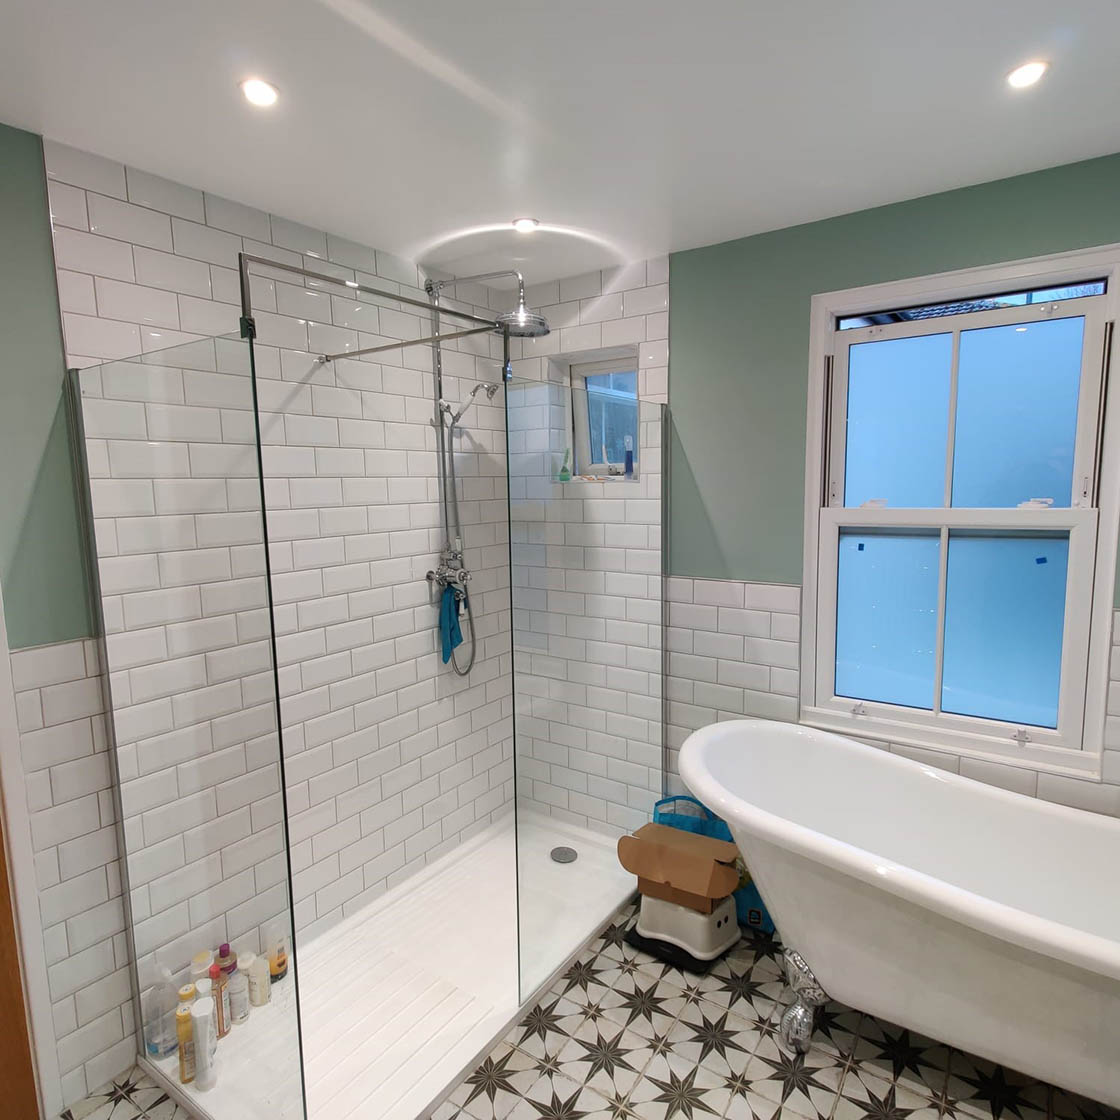 Victorian Style Bathroom Renovation in Redhill Surrey - Revisit Picture 1